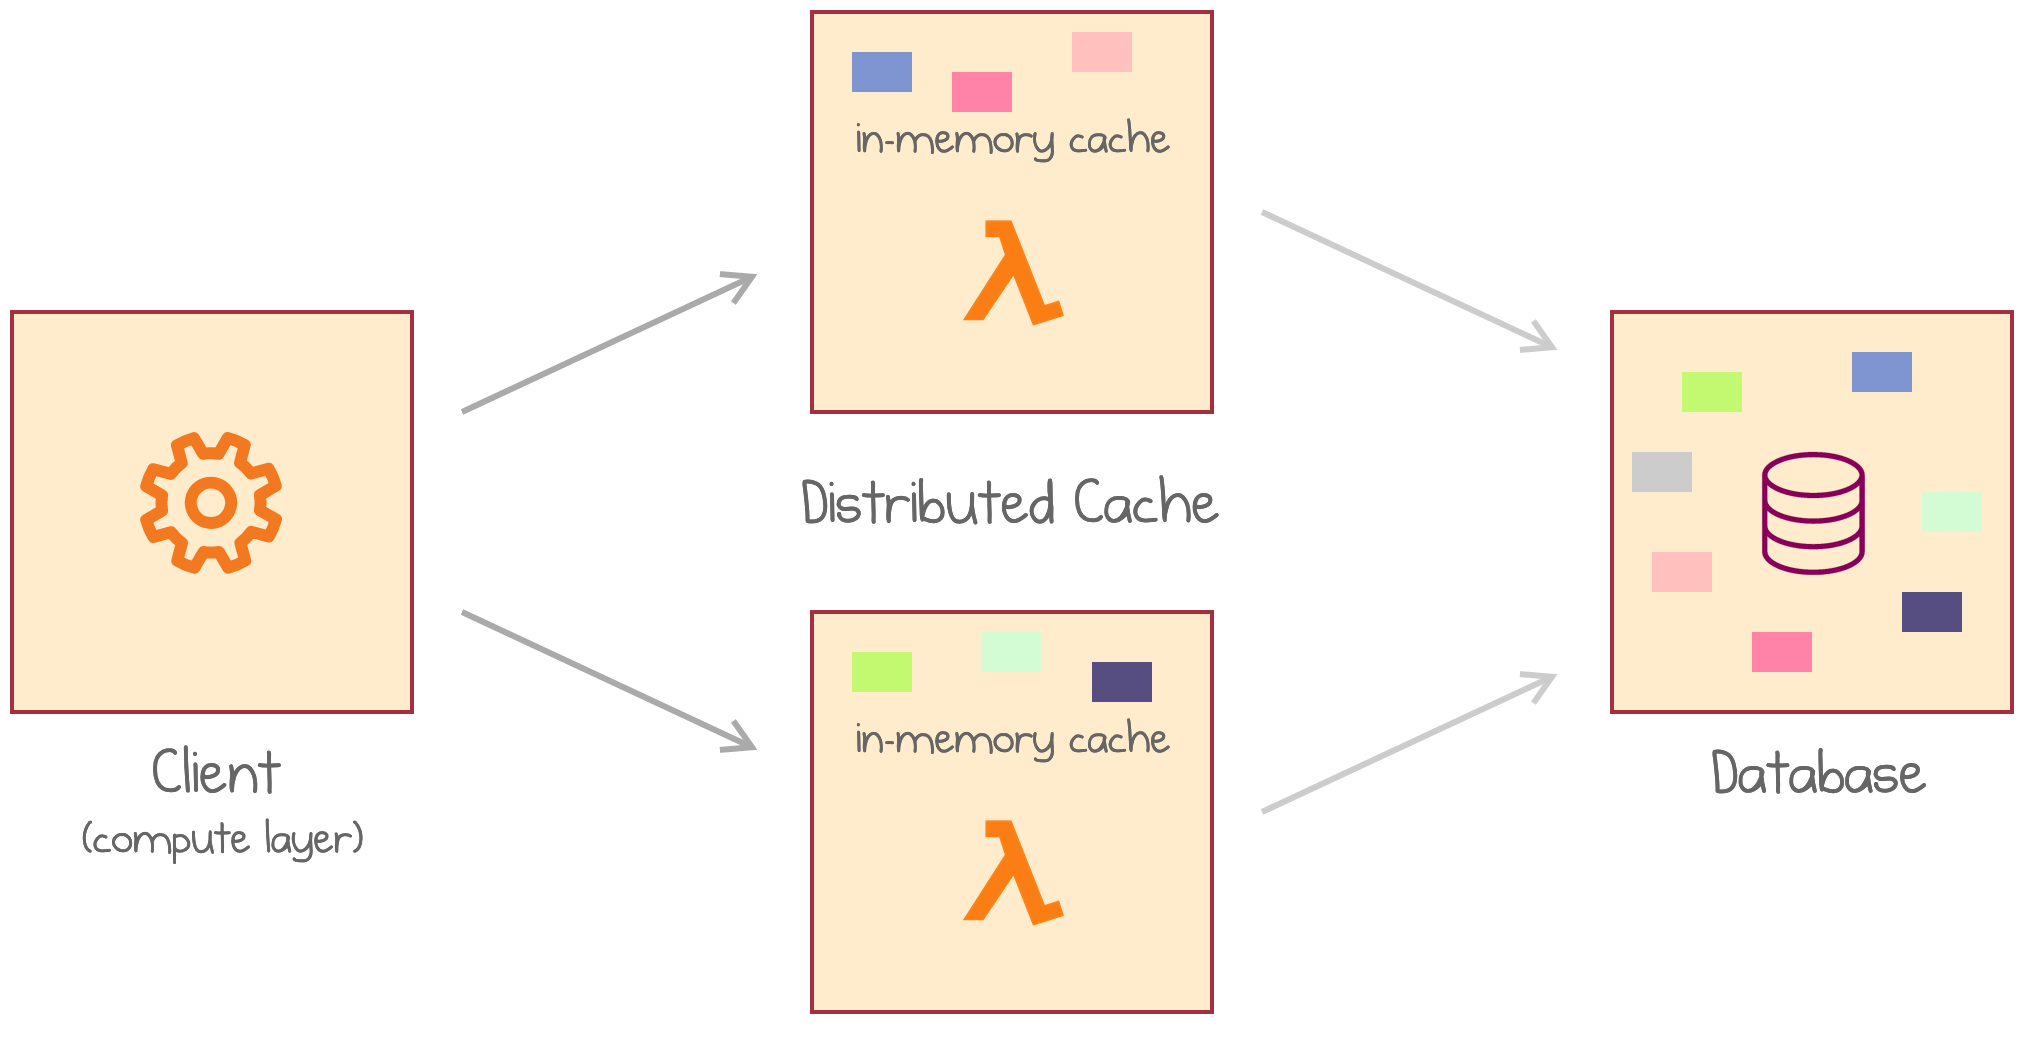 Application loads data from a distributed cache of multiple AWS Lambdas